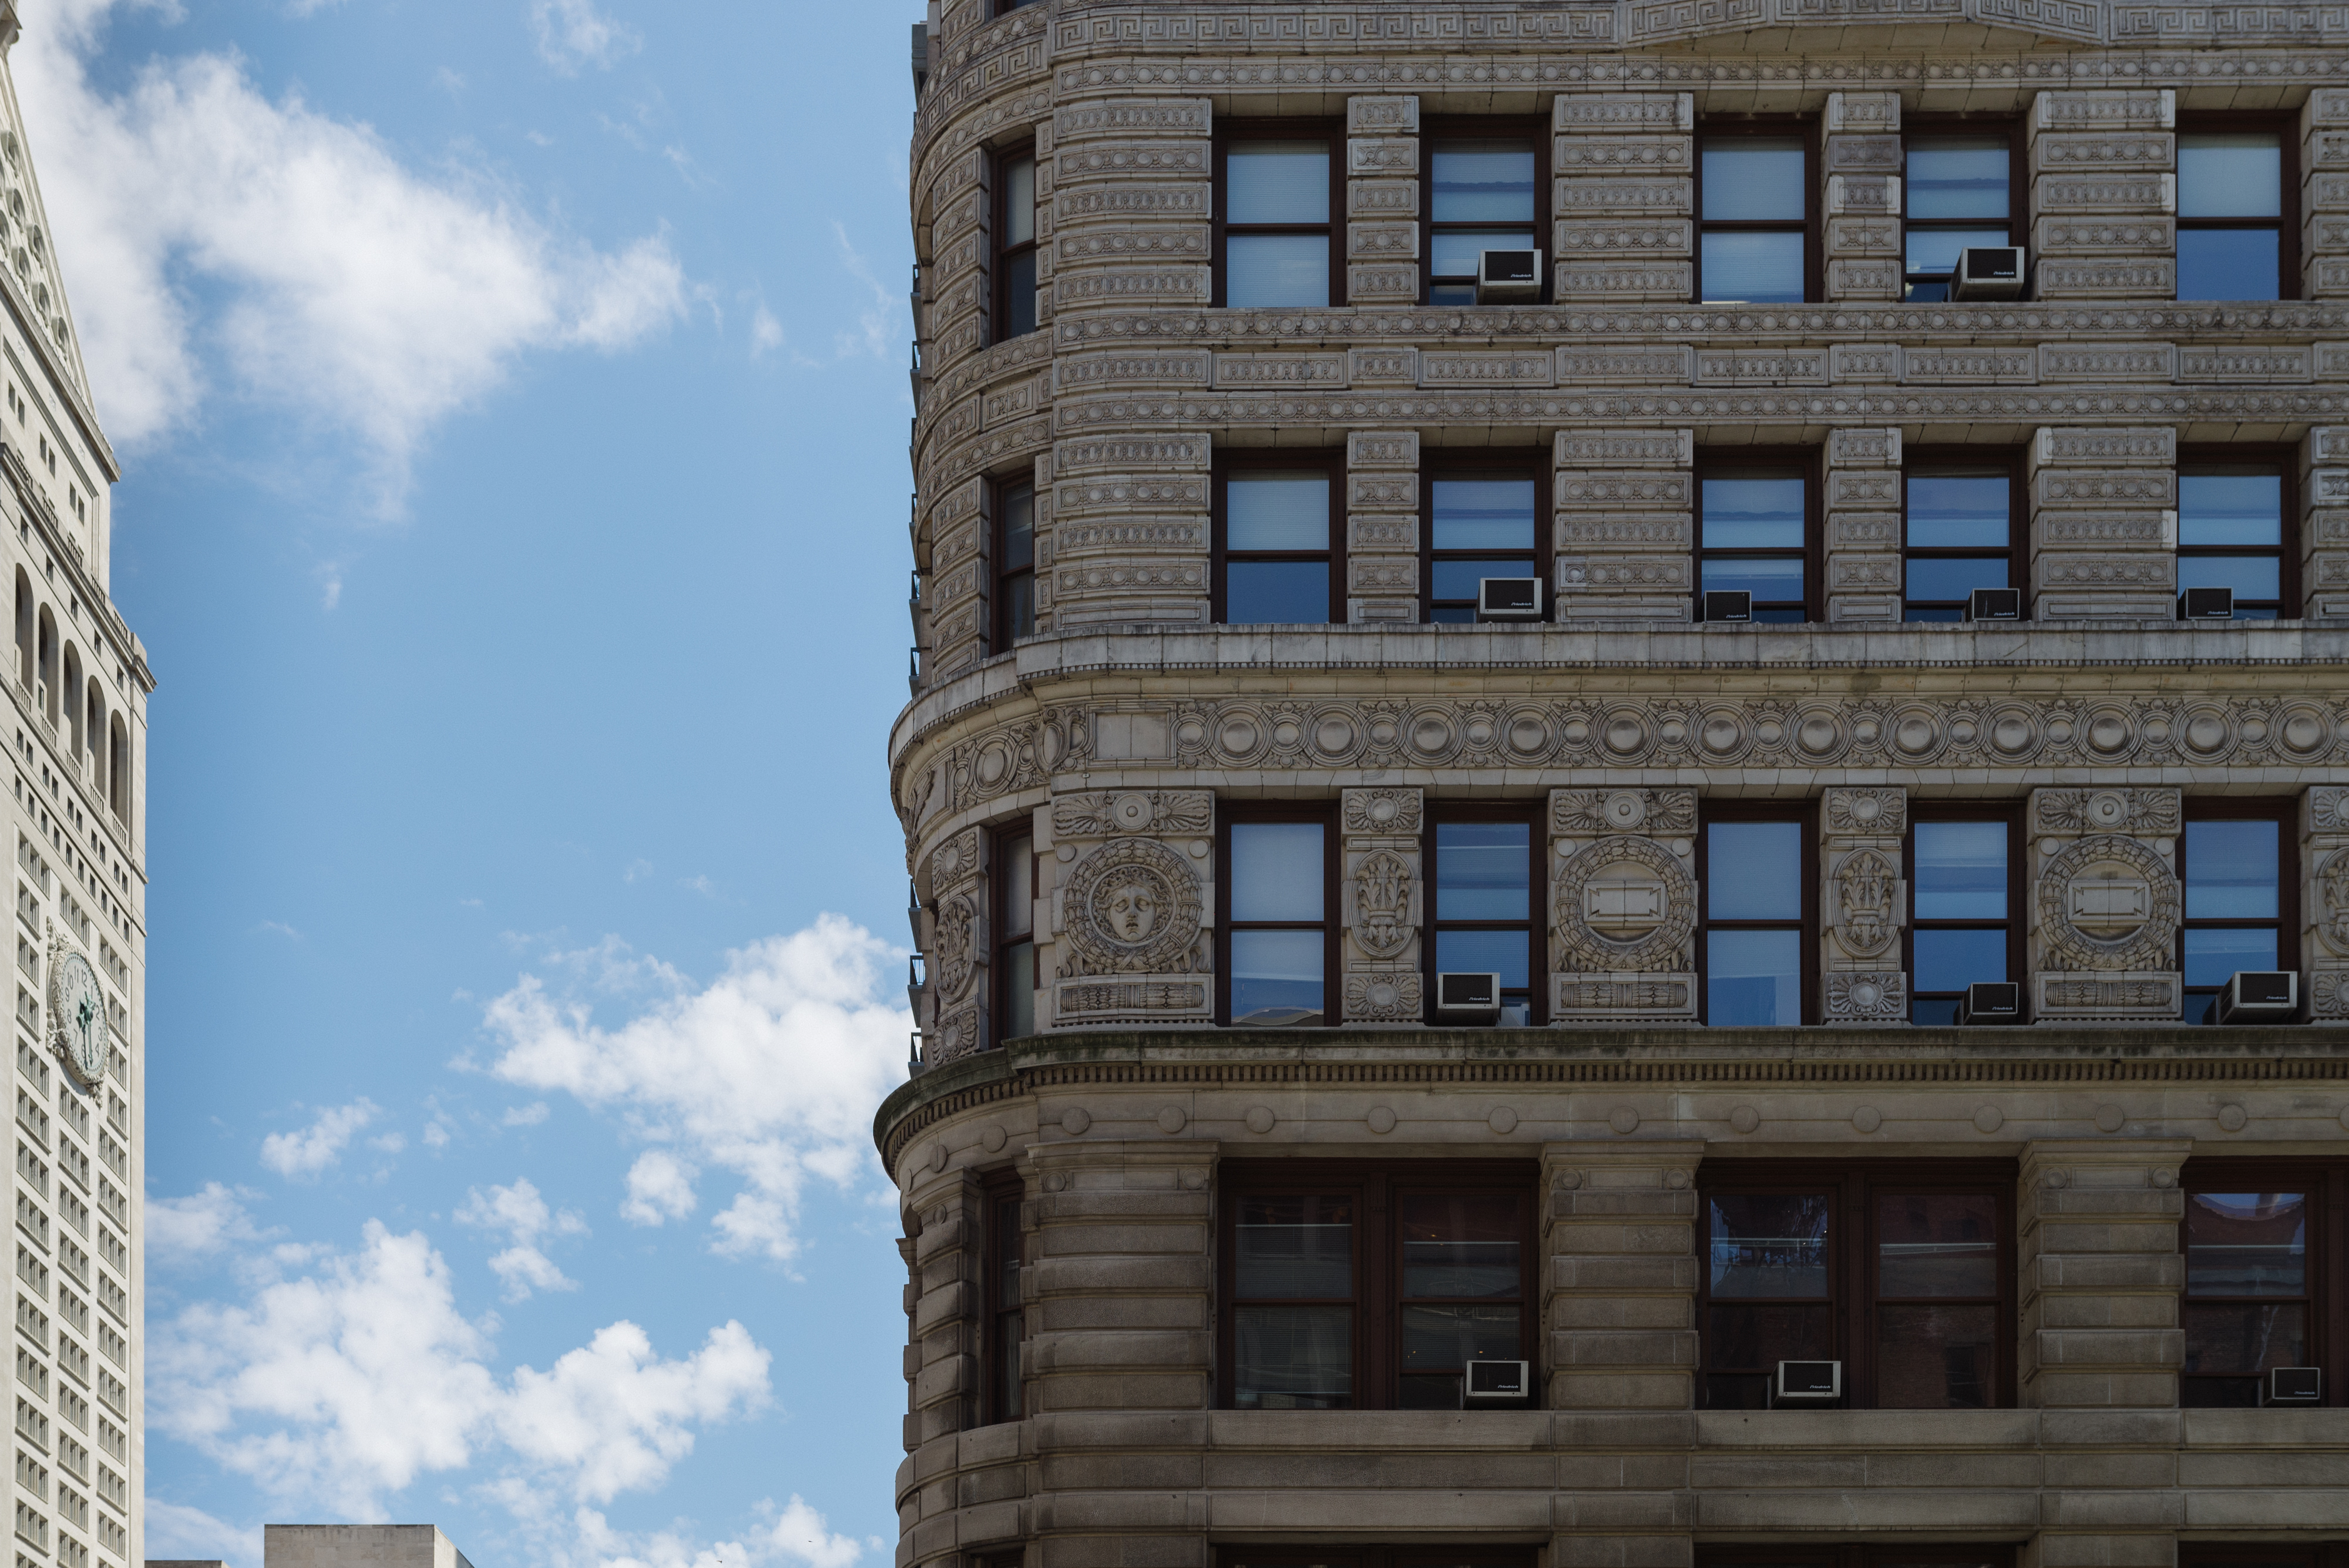 Allies and Morrison, Architect, London Architect, Architectural Photographer, New York, Flat Iron Building